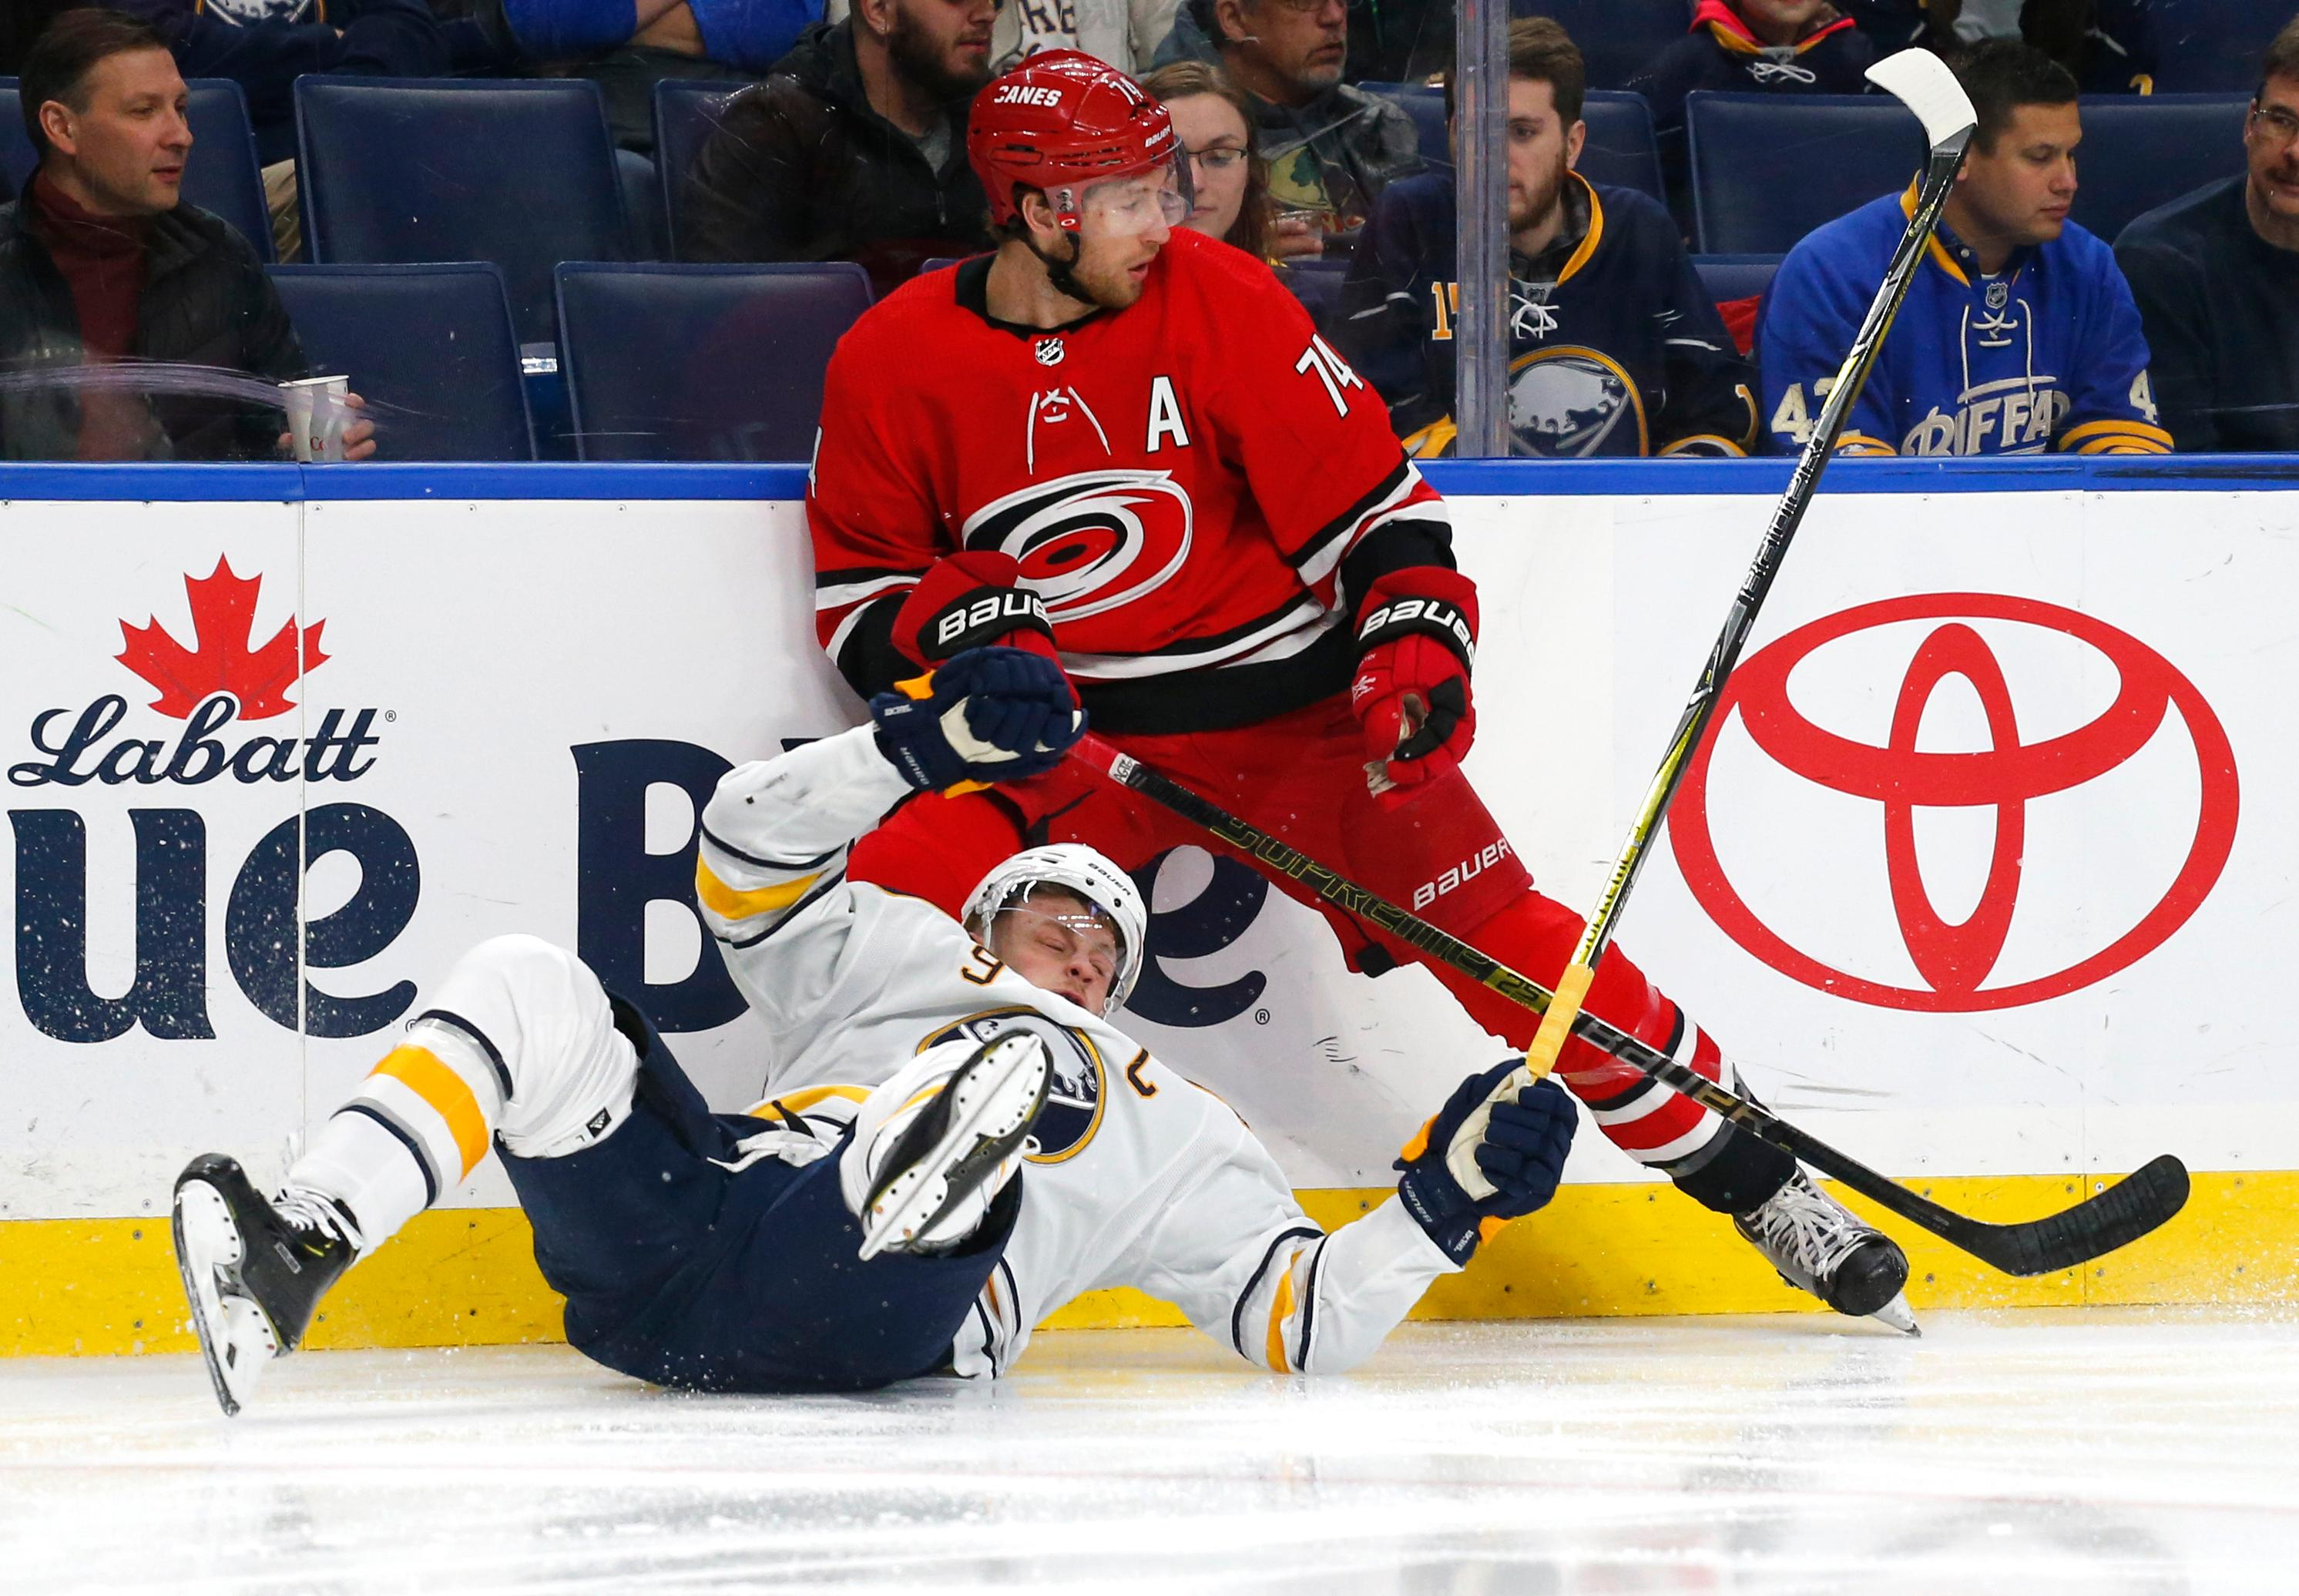 Buffalo Sabres forward Jack Eichel (9) and Carolina Hurricanes defenseman Jaccob Slavin (74) collide during the first period of an NHL hockey game Thursday, Feb. 7, 2019, in Buffalo N.Y. (AP Photo/Jeffrey T. Barnes)